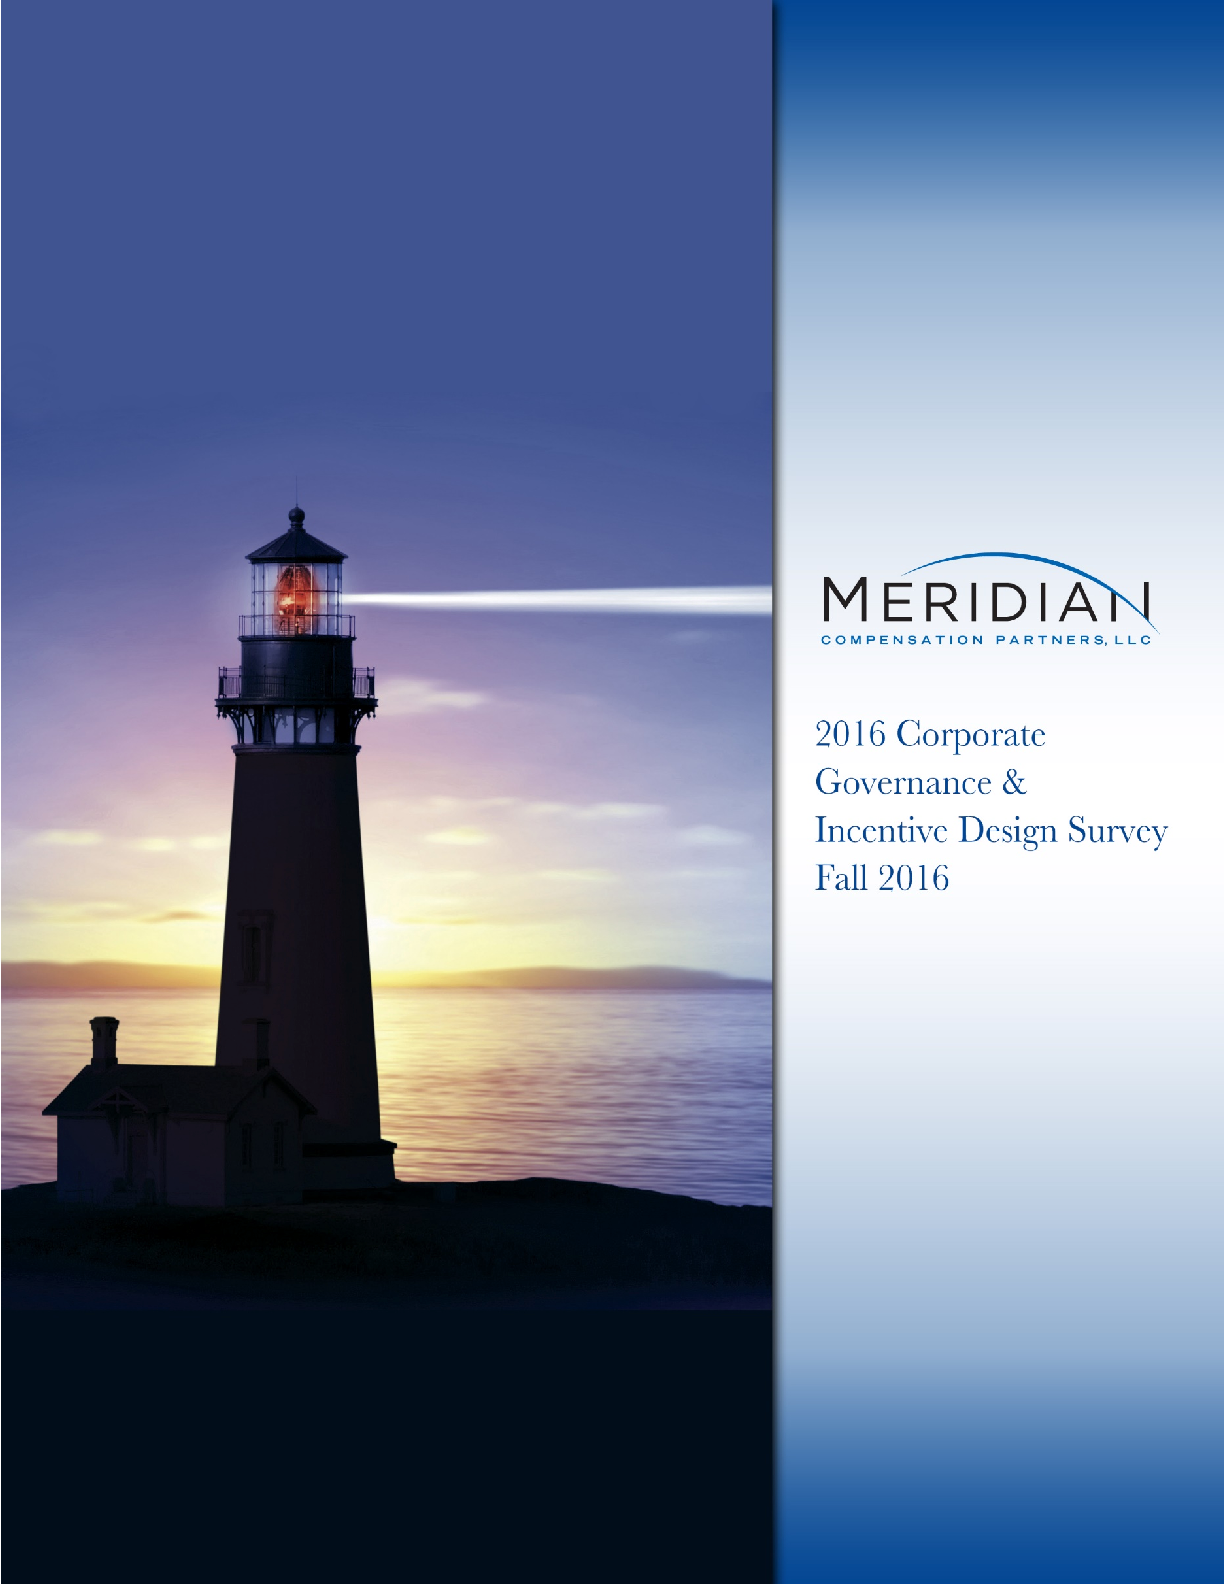 2016 Corporate Governance & Incentive Design Survey (PDF)